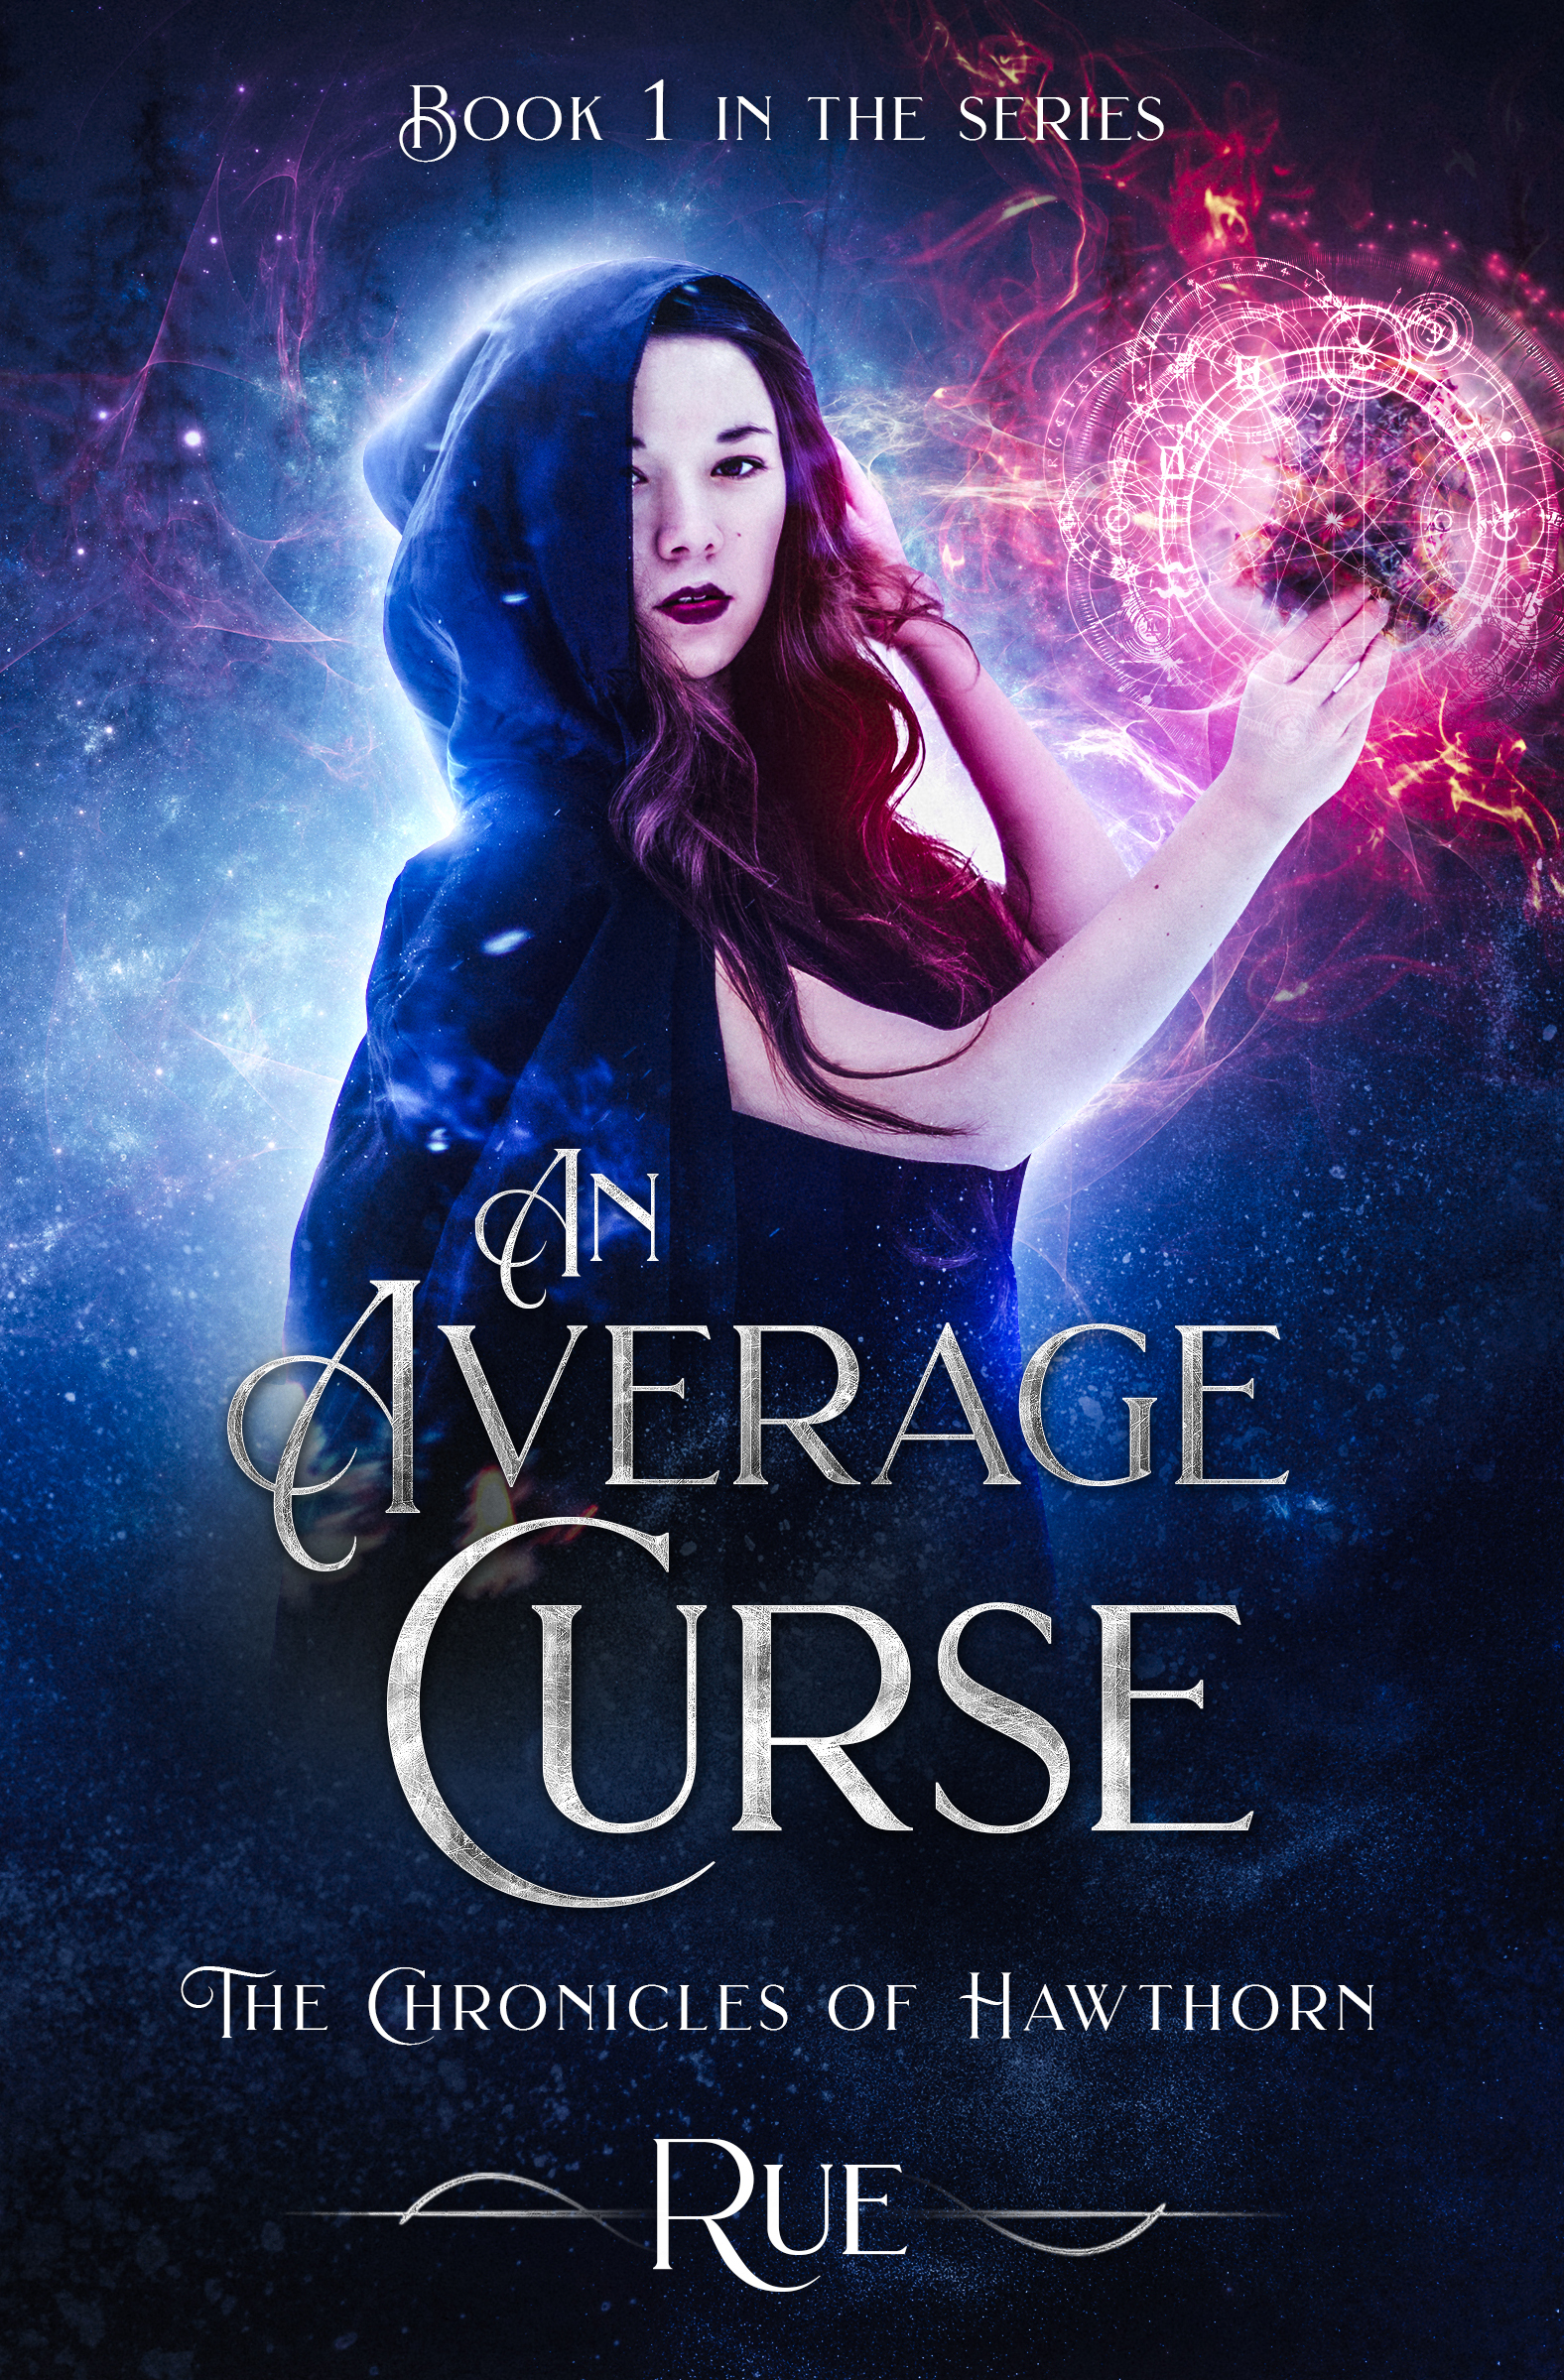 new YA fantasy series with female lead